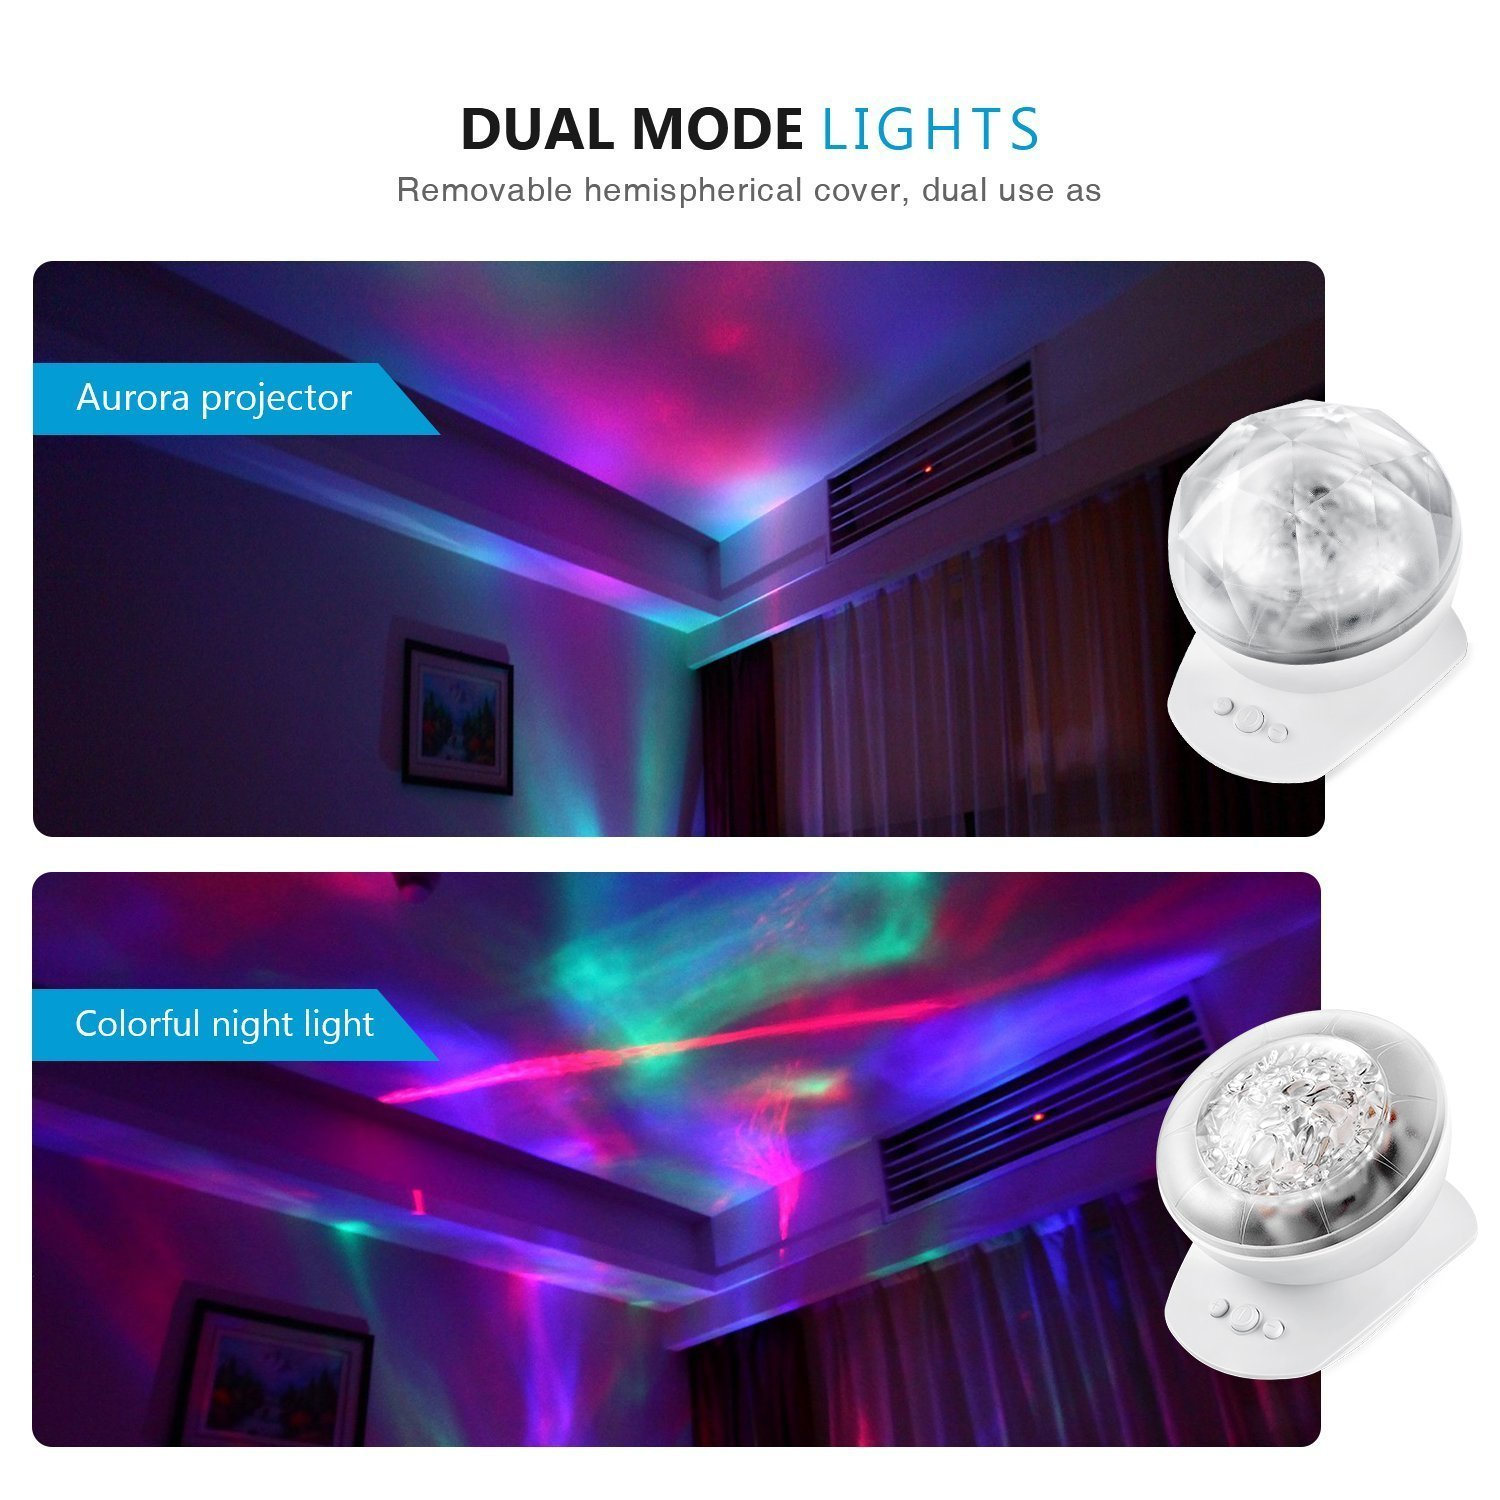 SinoPro Color Changing LED Night Light & Aurora Borealis Projector with Built-in Speaker for Children and Adults as Sleep Aid Light, Decorative Light, Mood Light in Kids Room, Living Room (White)